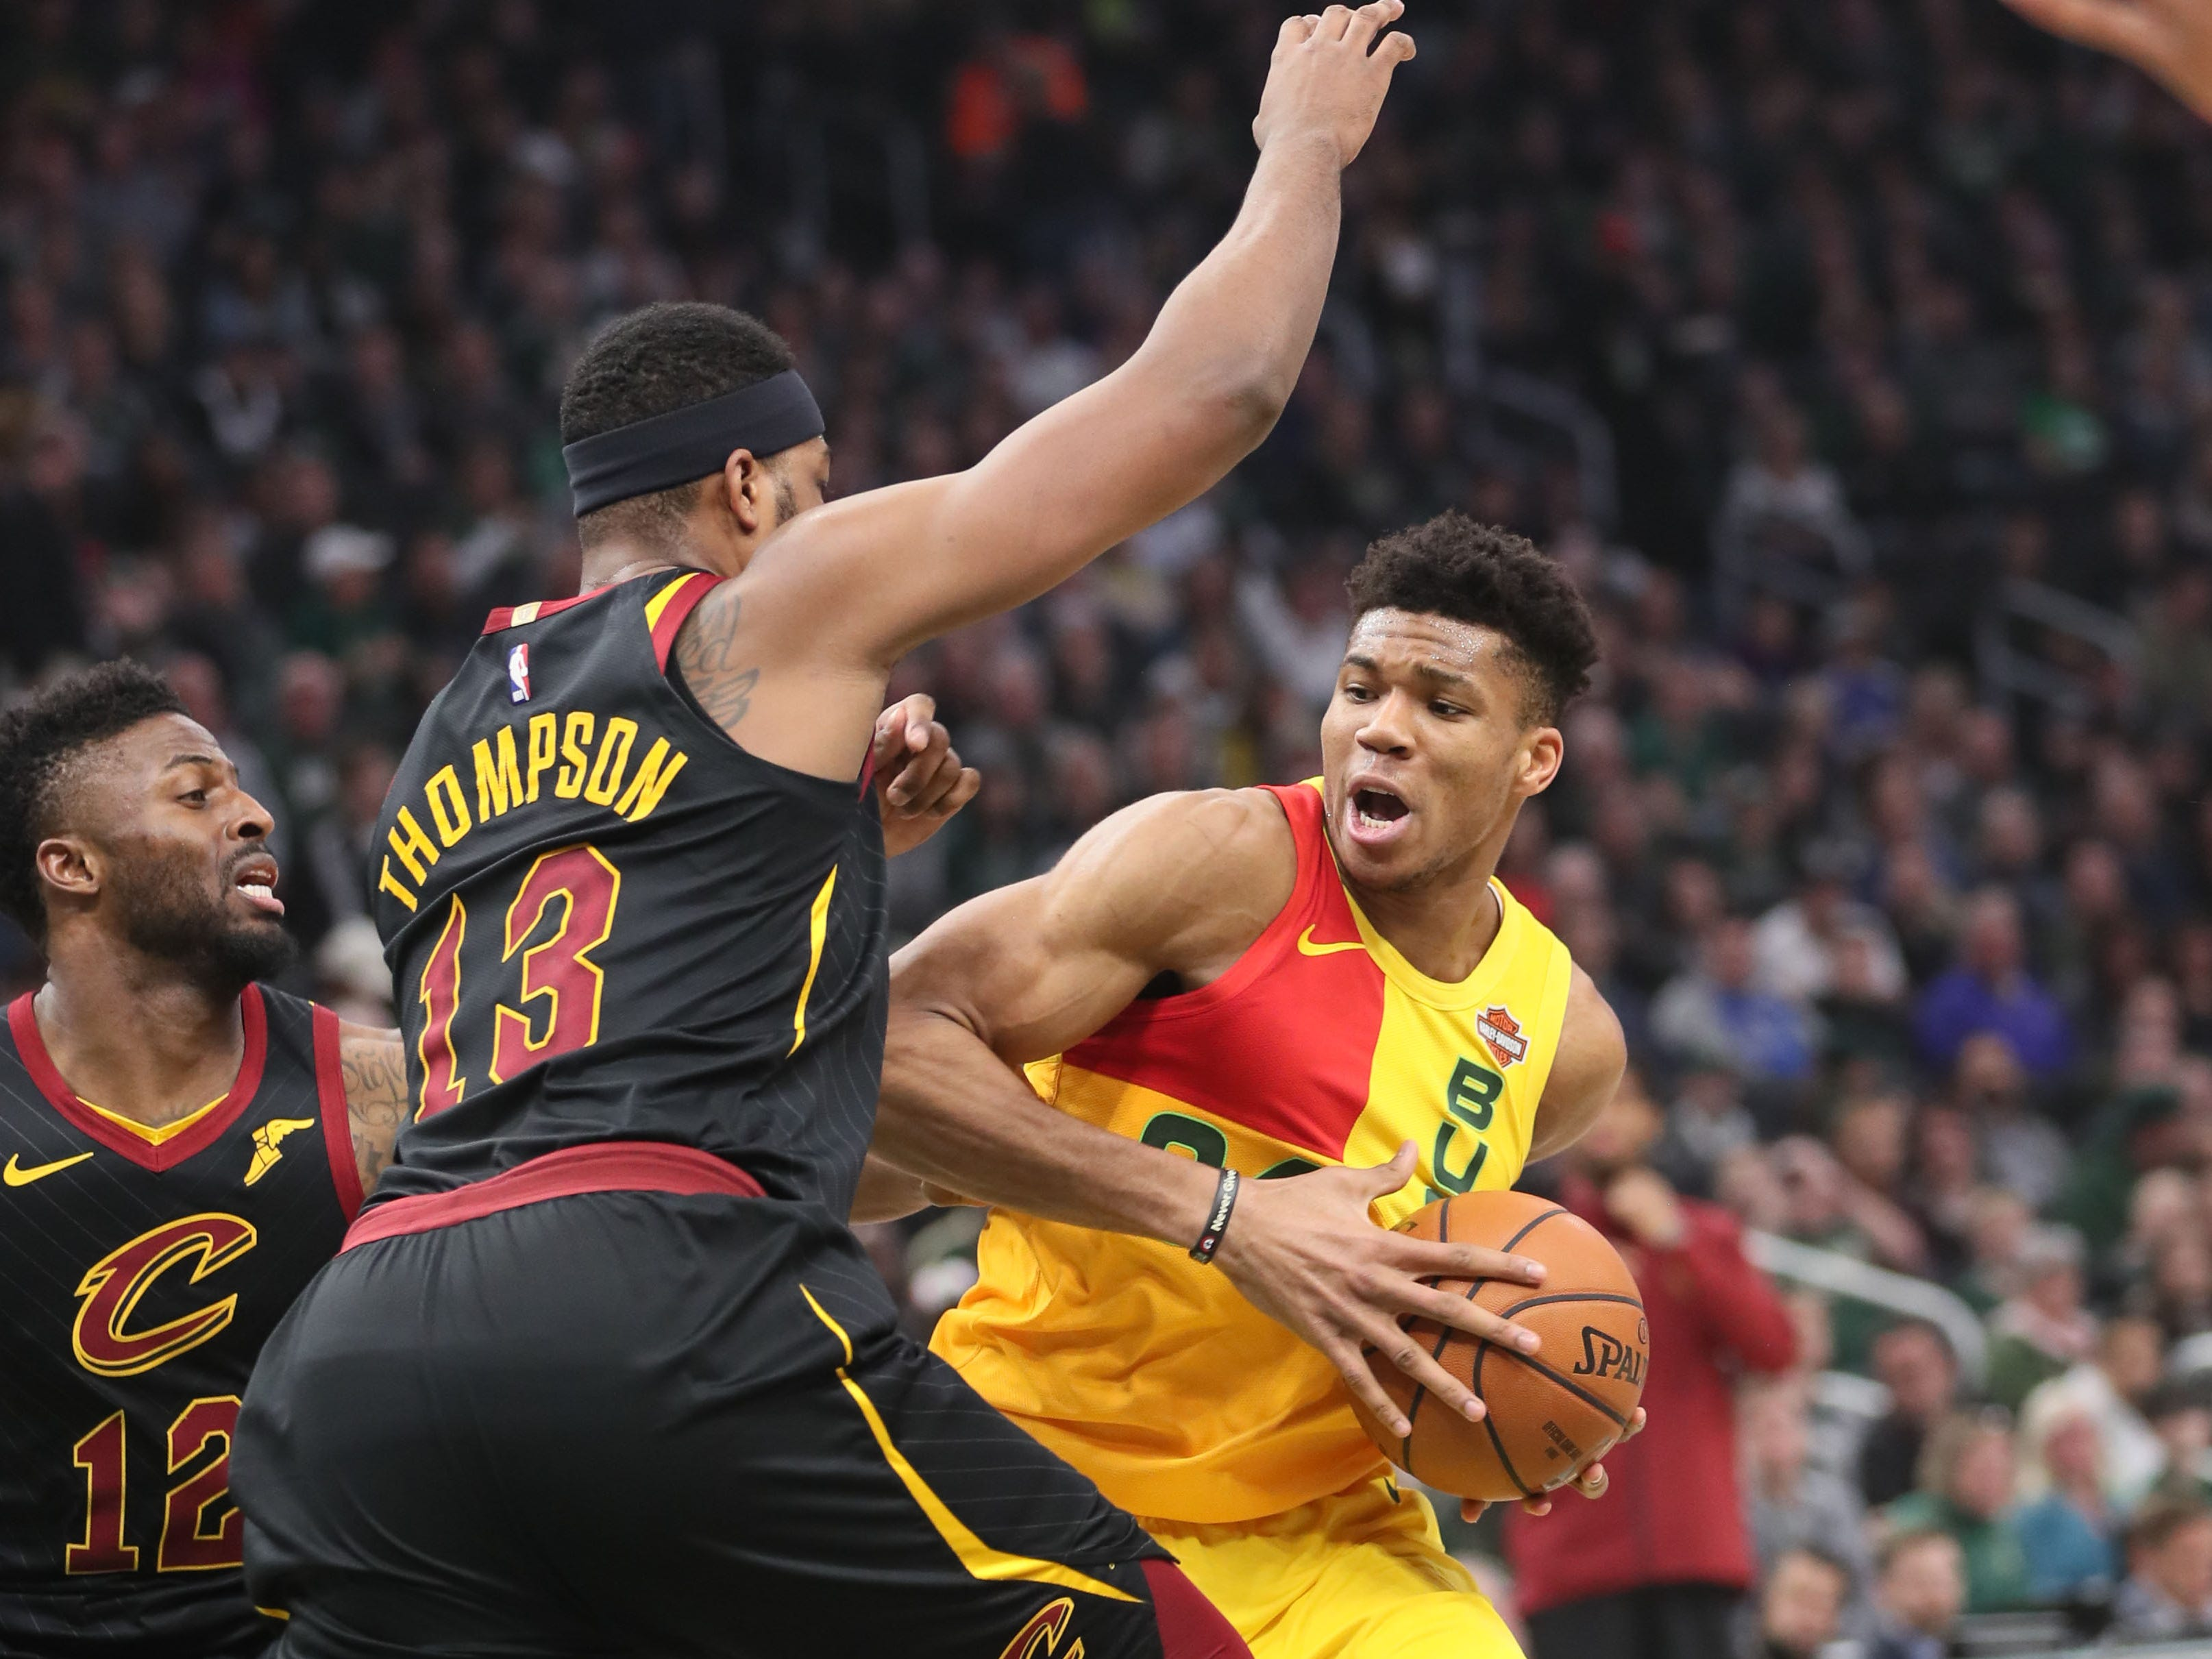 Giannis Antetokounmpo of the Bucks drives on the Cavaliers' Tristan Thompson in the paint Sunday.